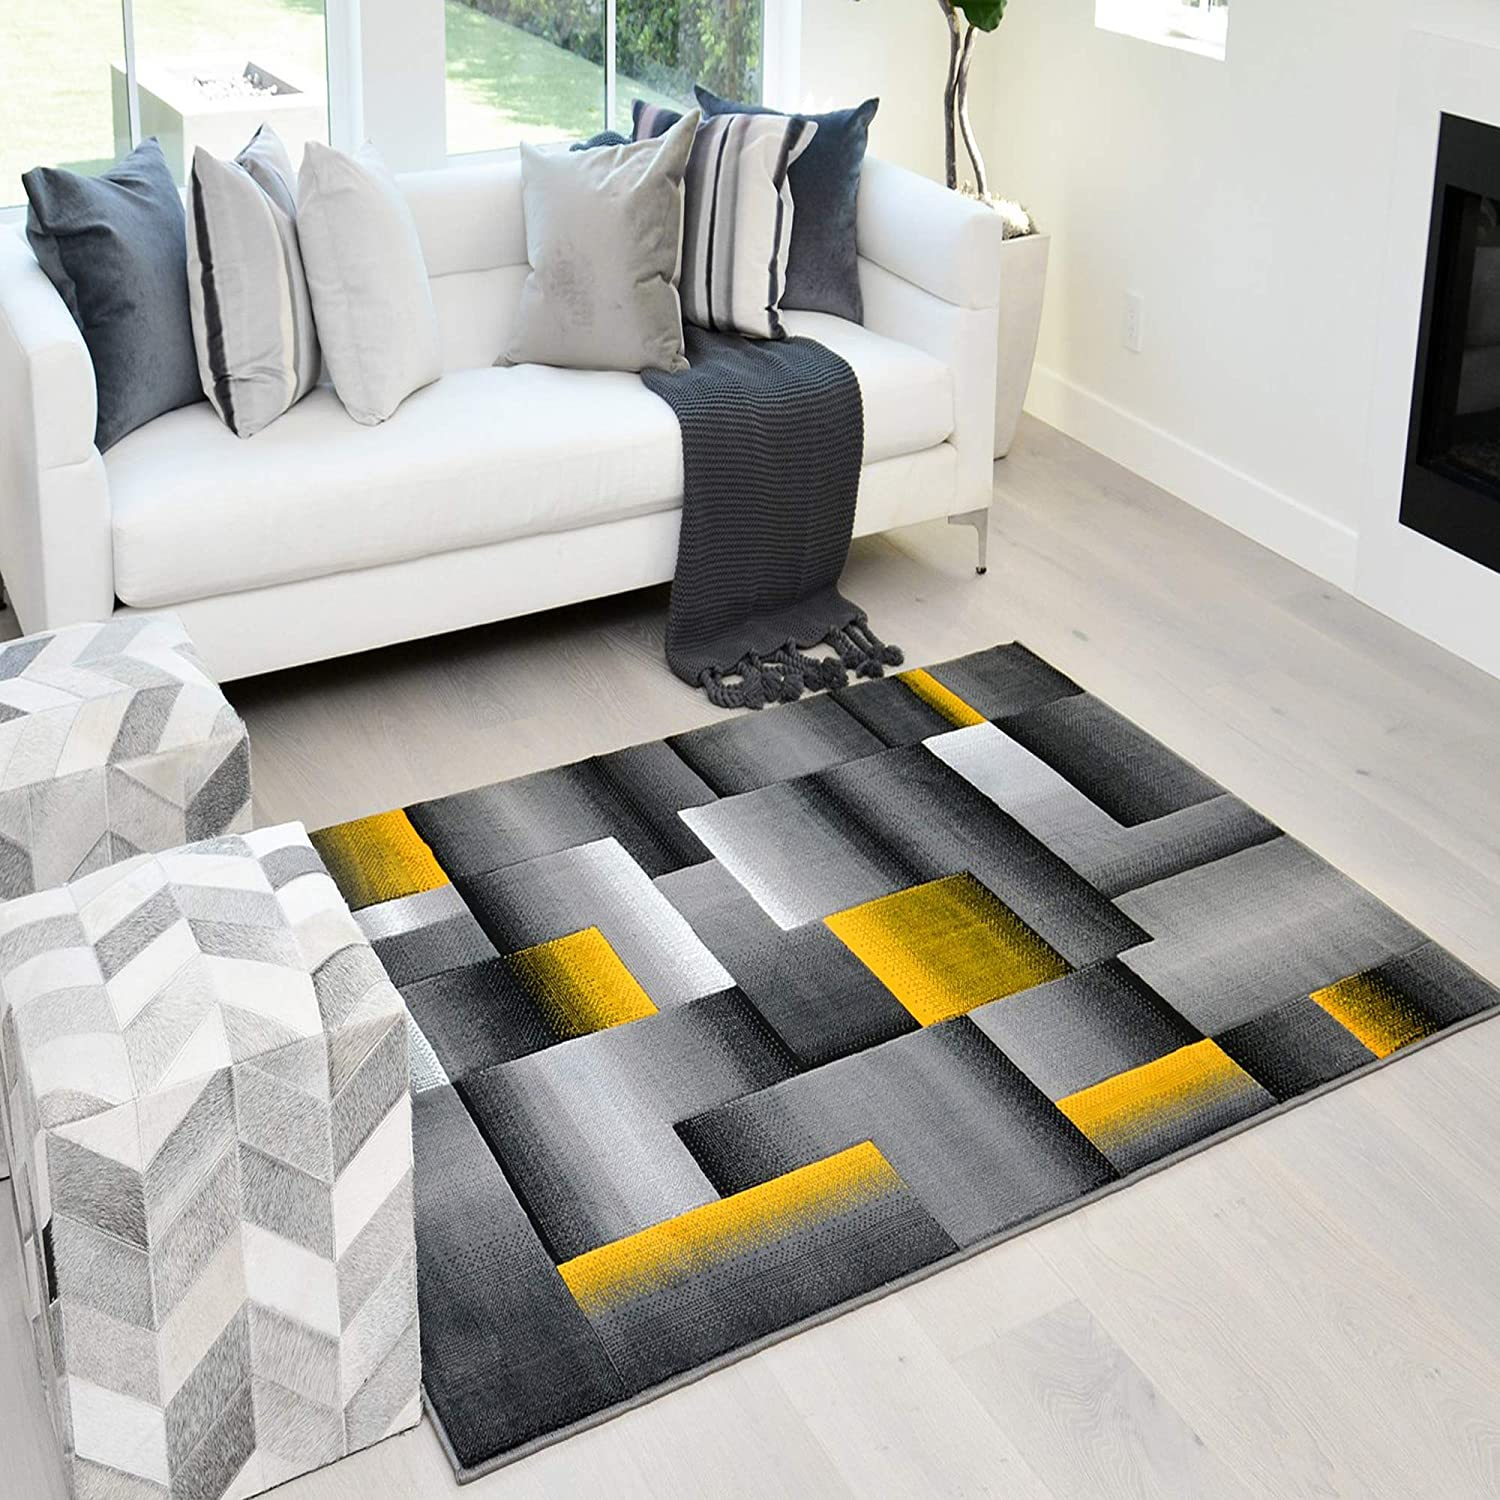 Amazon Com Handcraft Rugs Abstract Geometric Modern Squares Pattern Yellow Orange Silver Gray Black Area Rug 5x7 Kitchen Dining